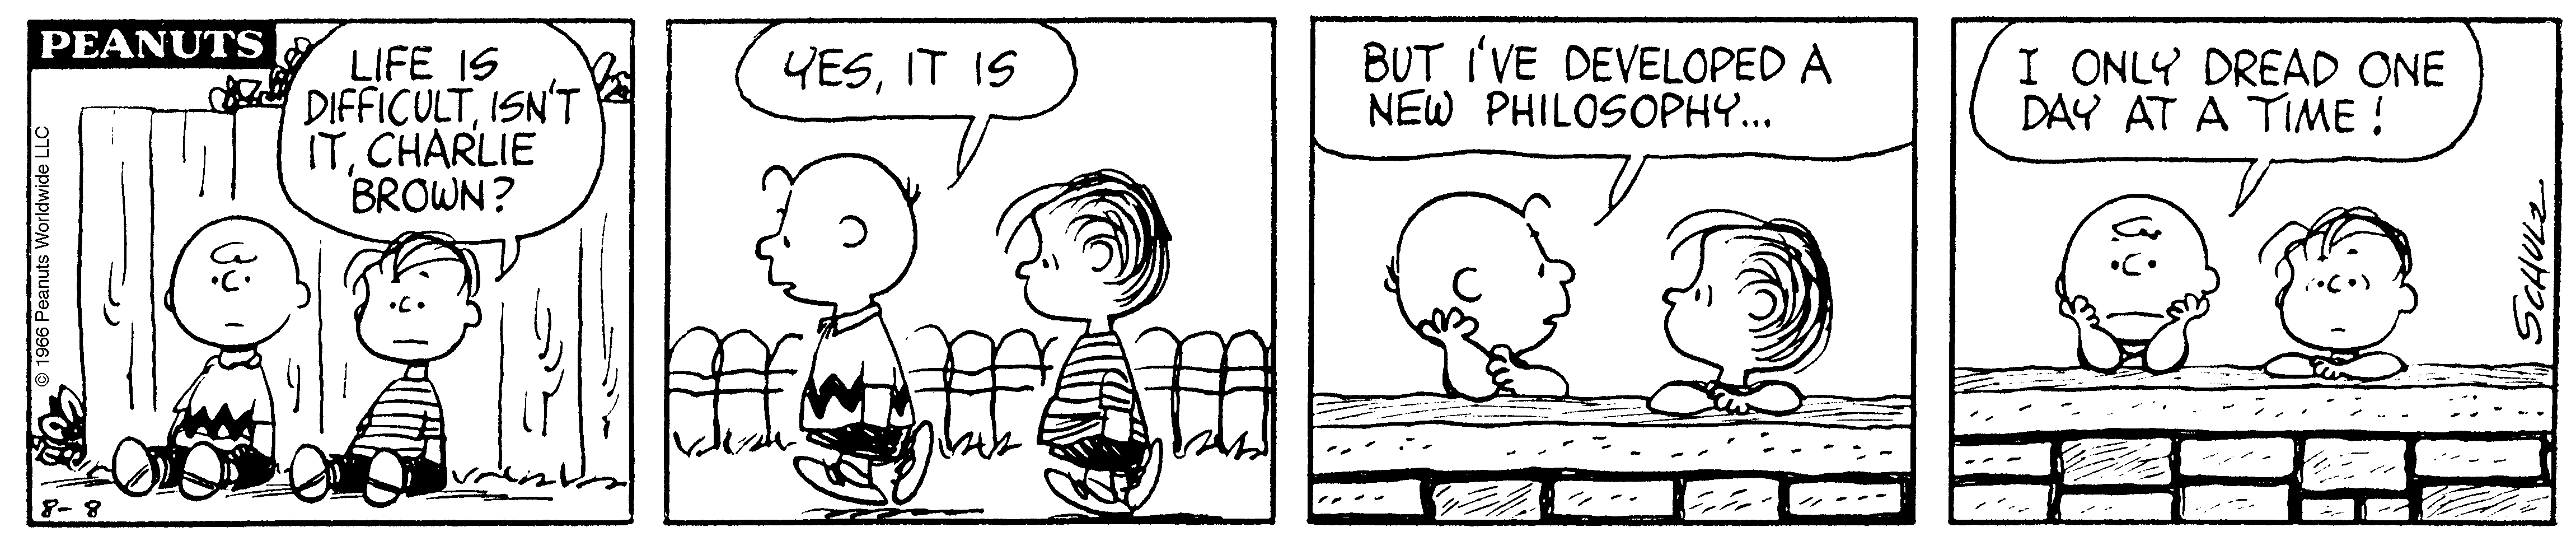 A black and white comic strip of two boys leaning on a fence and talking.